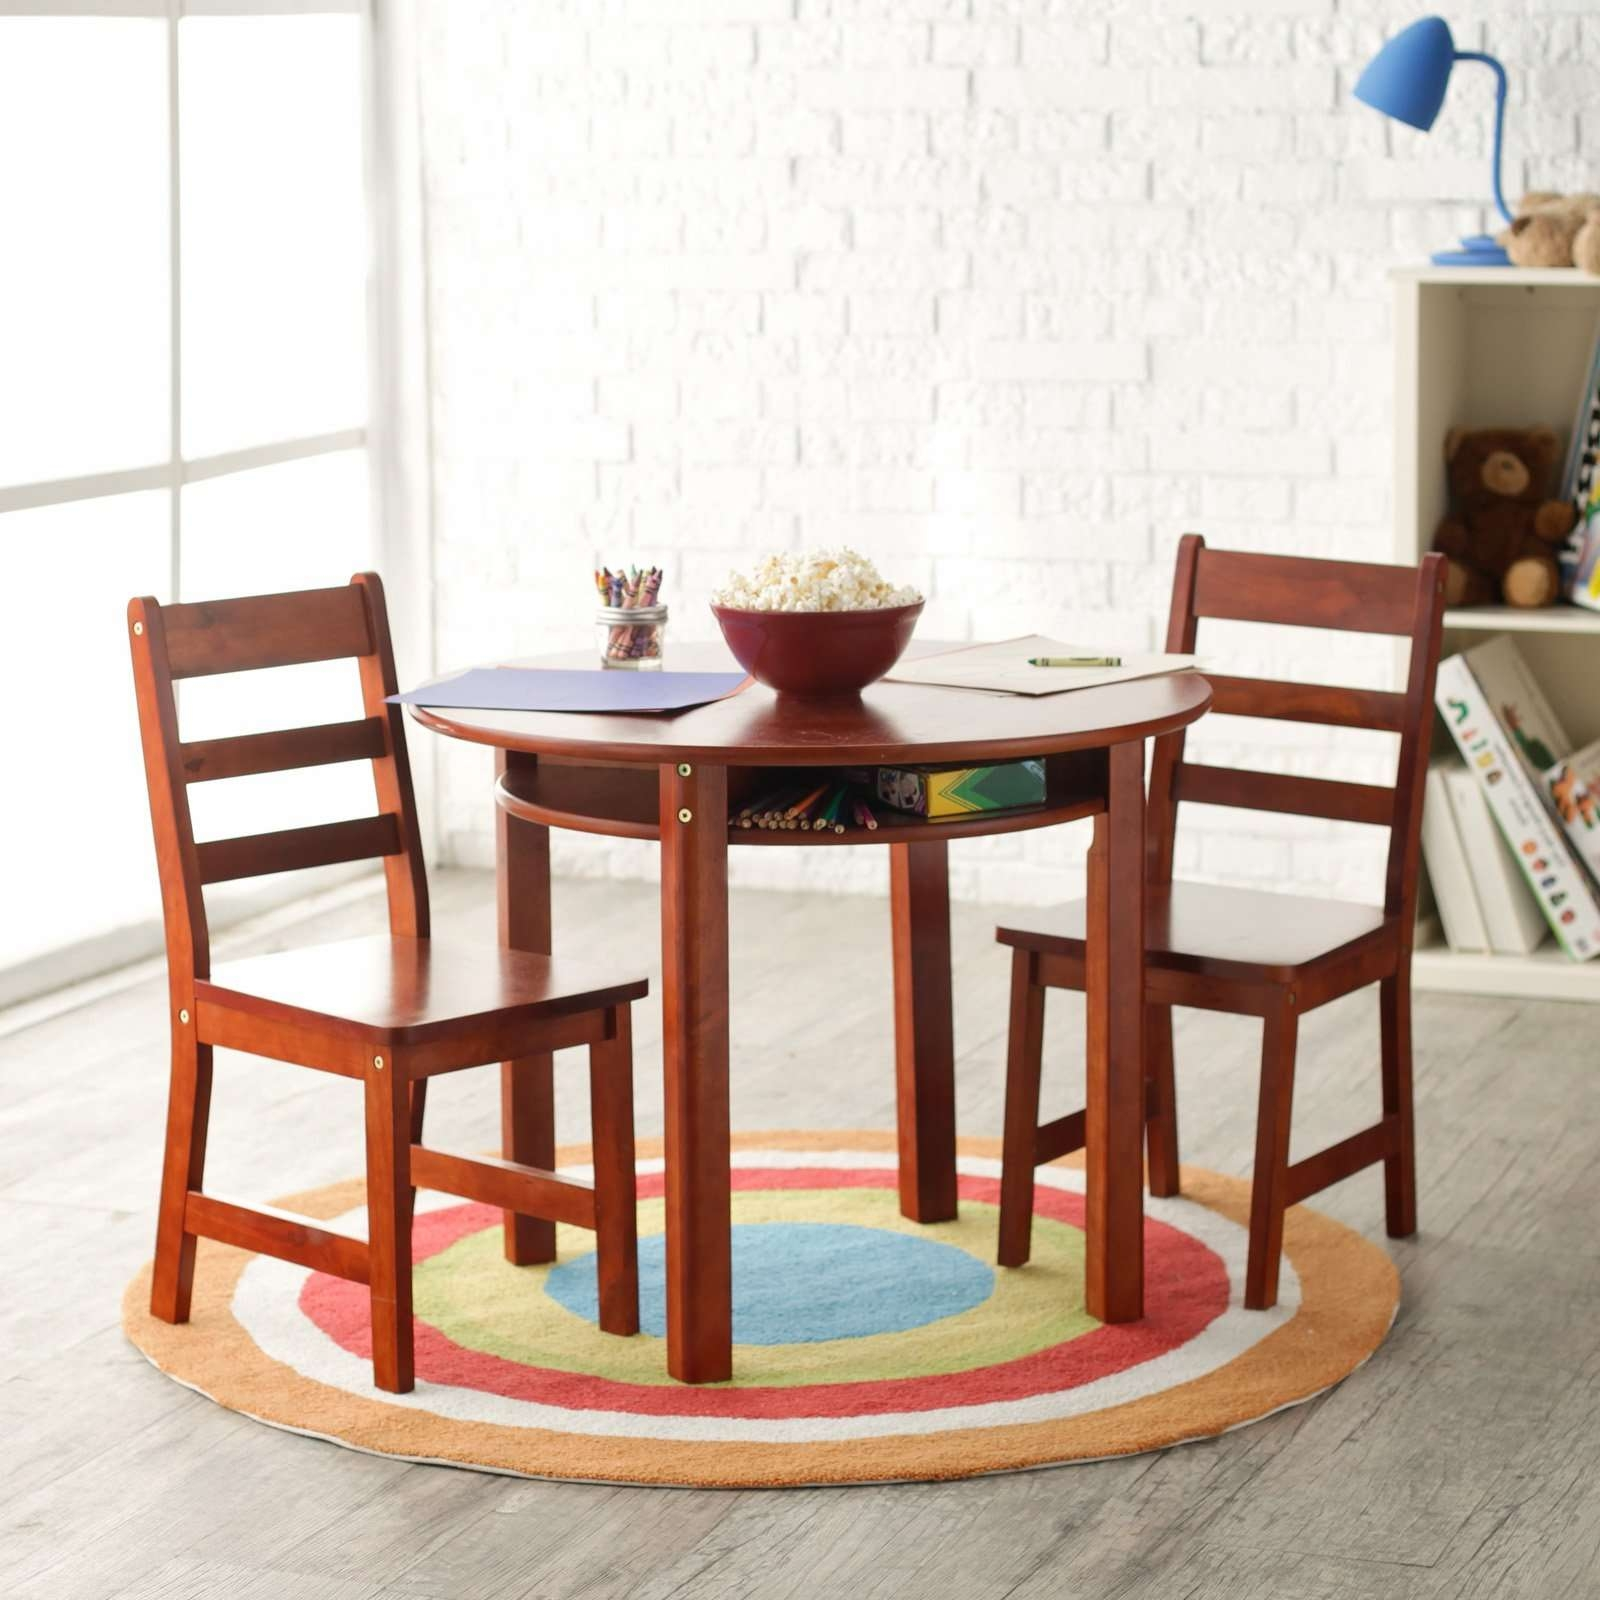 Lipper Childrens Round Table And Chair Set (View 9 of 20)